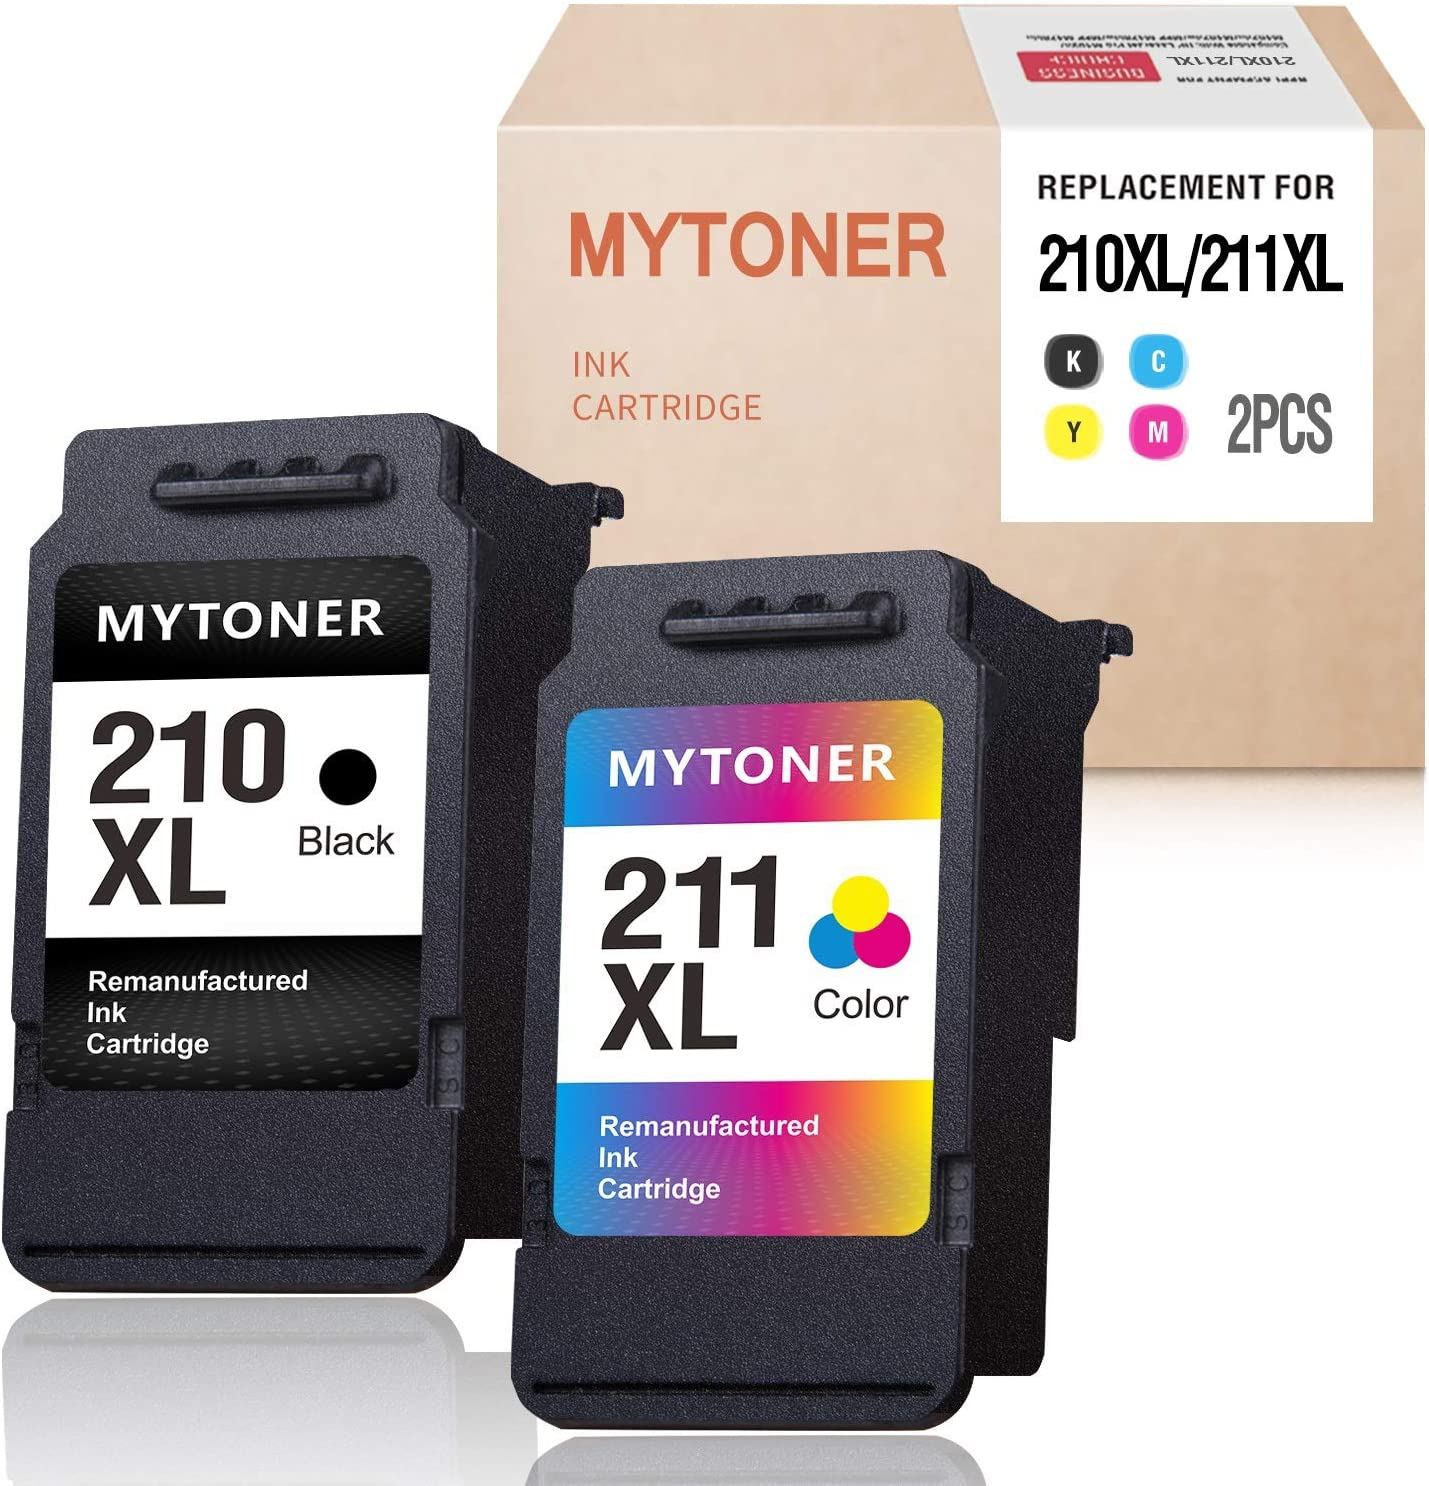 MYTONER Remanufactured Ink Cartridge Replacement for Canon 210XL 211XL Ink for PIXMA MX350 MP250 MX340 MP280 MP459 MX410 IP2702 MP240 MX360 MP490 MP270 MP230 Printer (Black,Tri-Color)